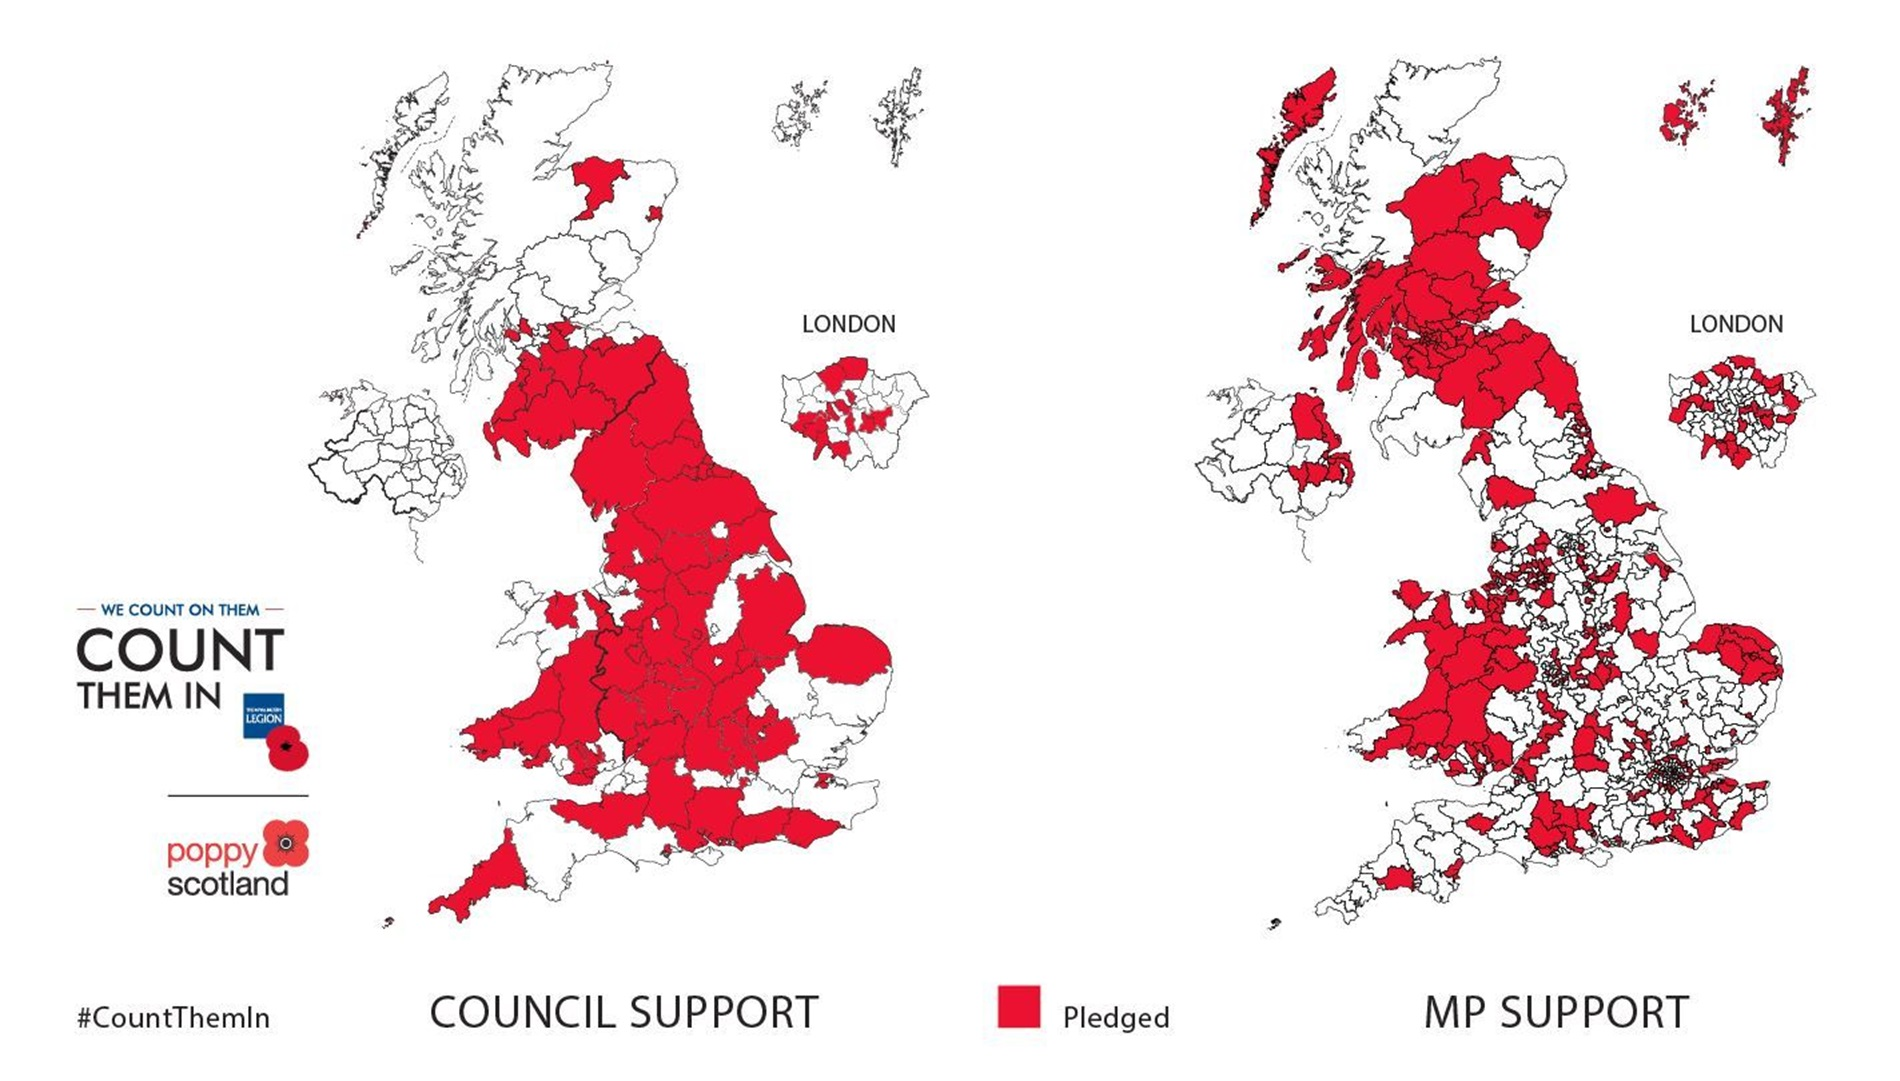 A map of the UK showing which councils and MPs support the Count Them In campaign